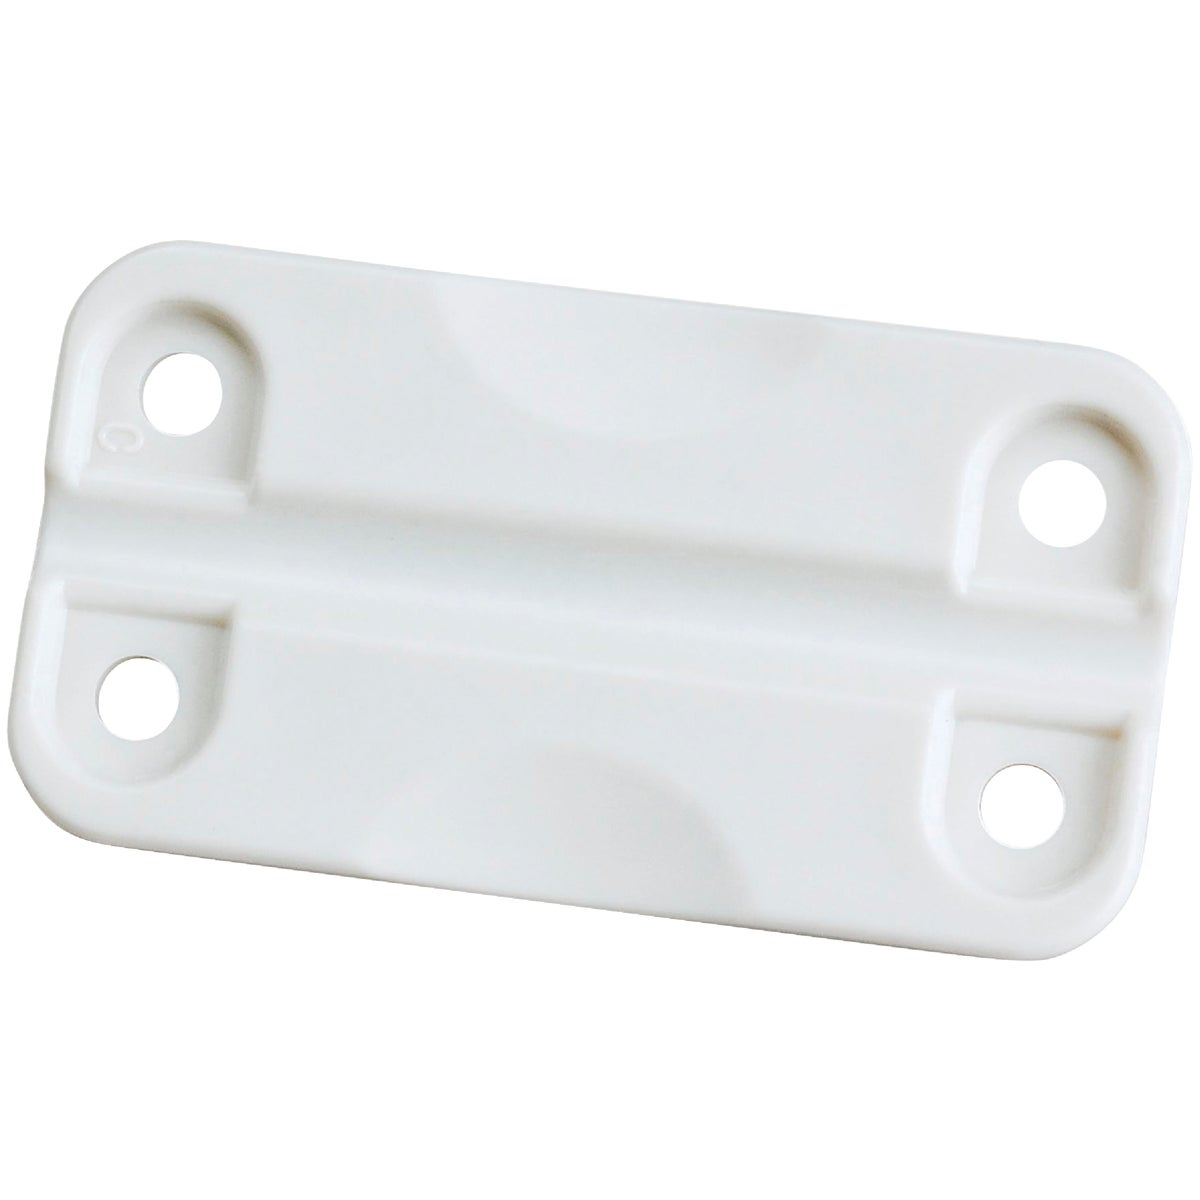 REPLACEMENT COOLER HINGE - 24012 by Igloo Corp